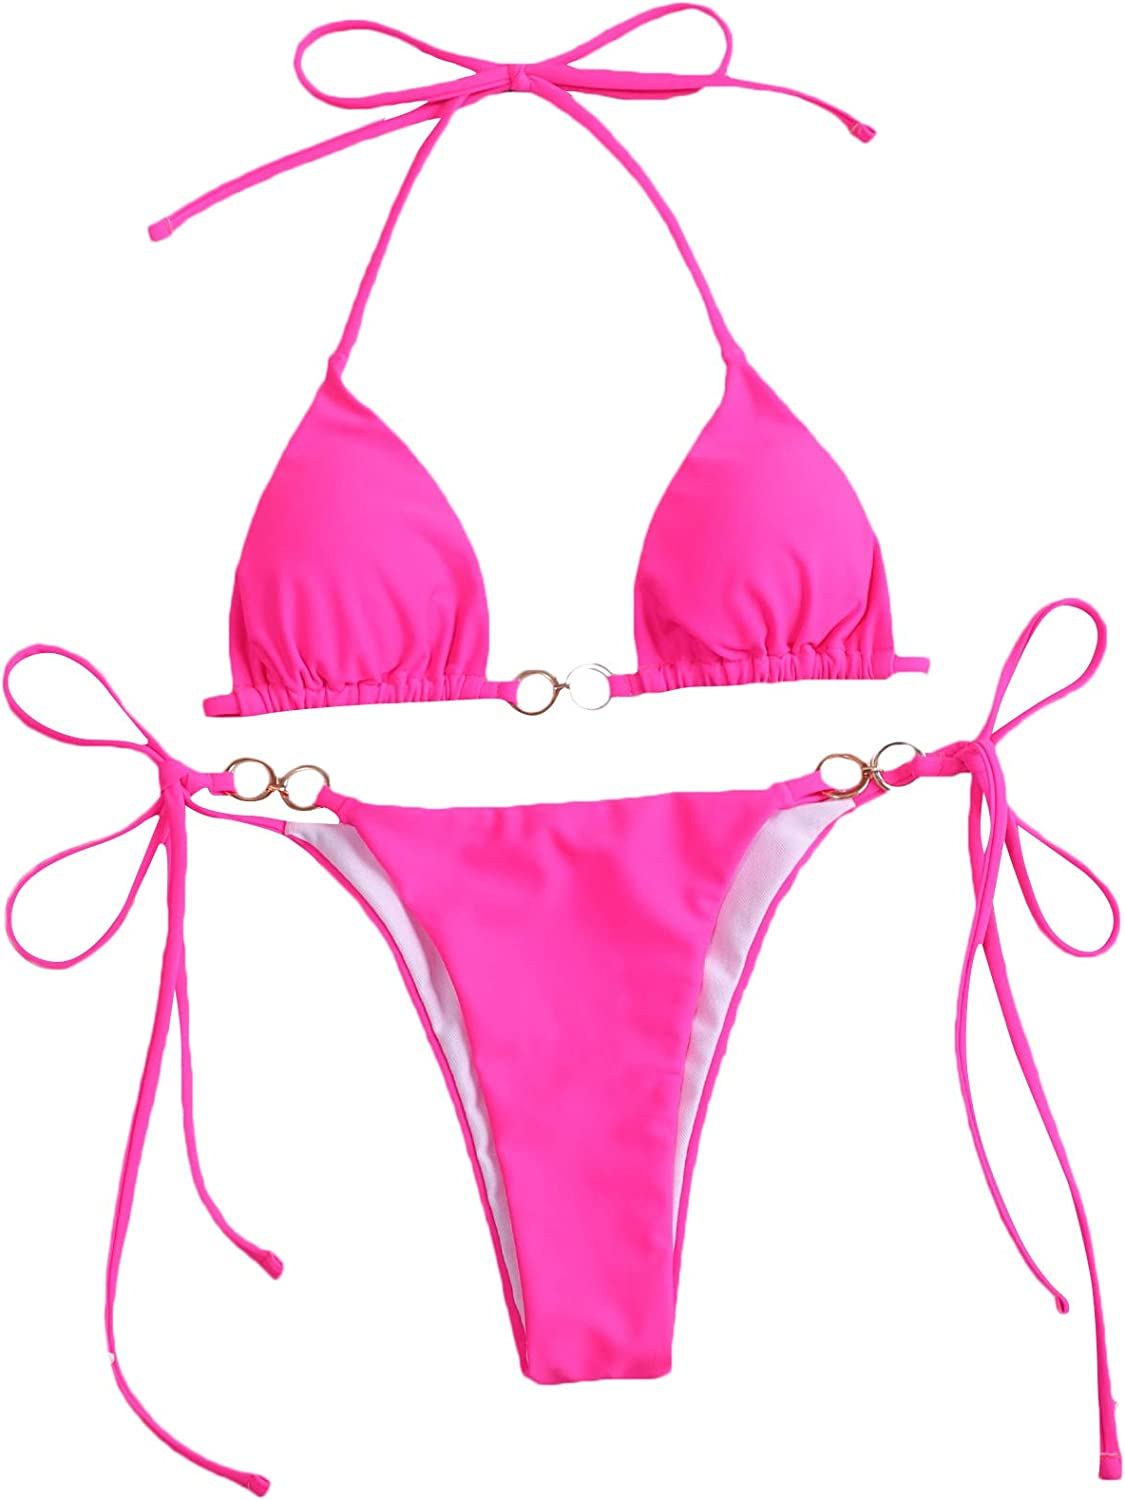 SOLY HUX Women's Sexy Halter Triangle Tie Side Bikini Bathing Suit 2 Piece Swimsuits Pink S